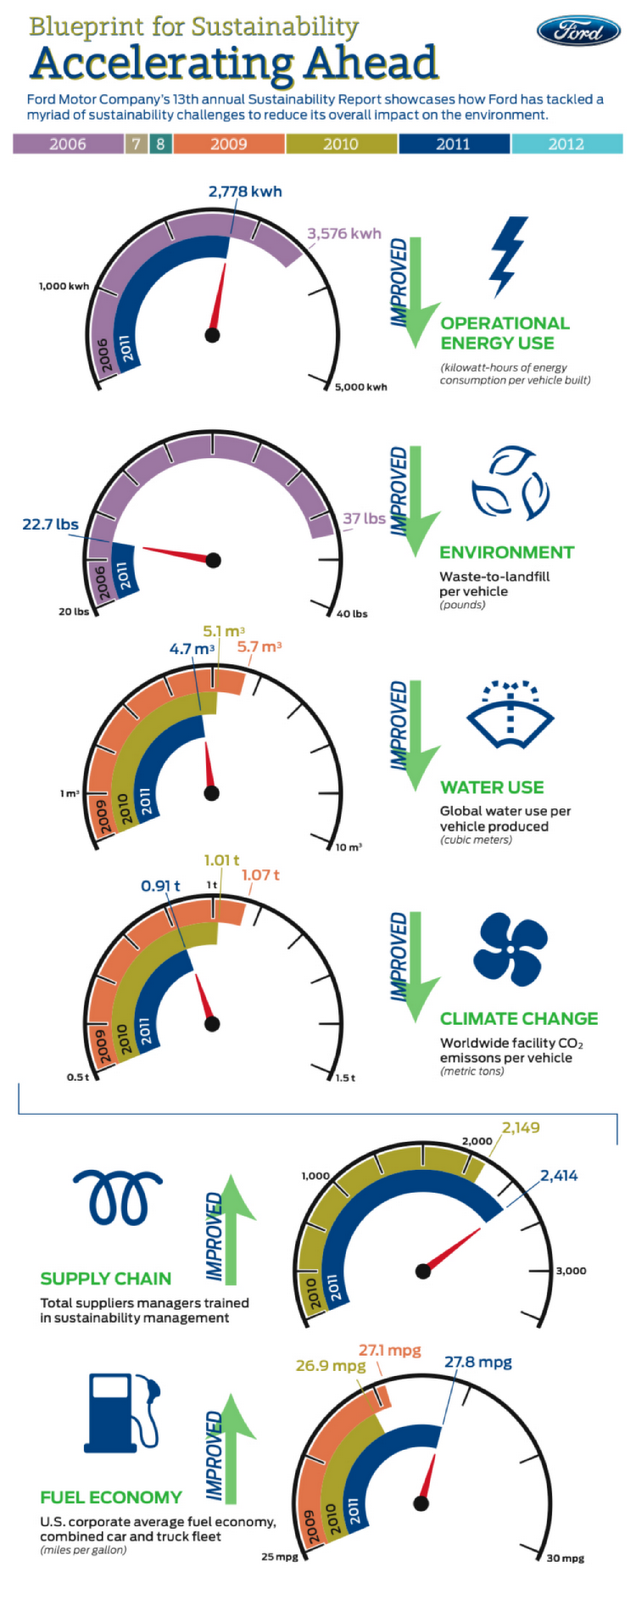 Infographic Showing How Ford Reduced Per Vehicle Energy Use by 22%